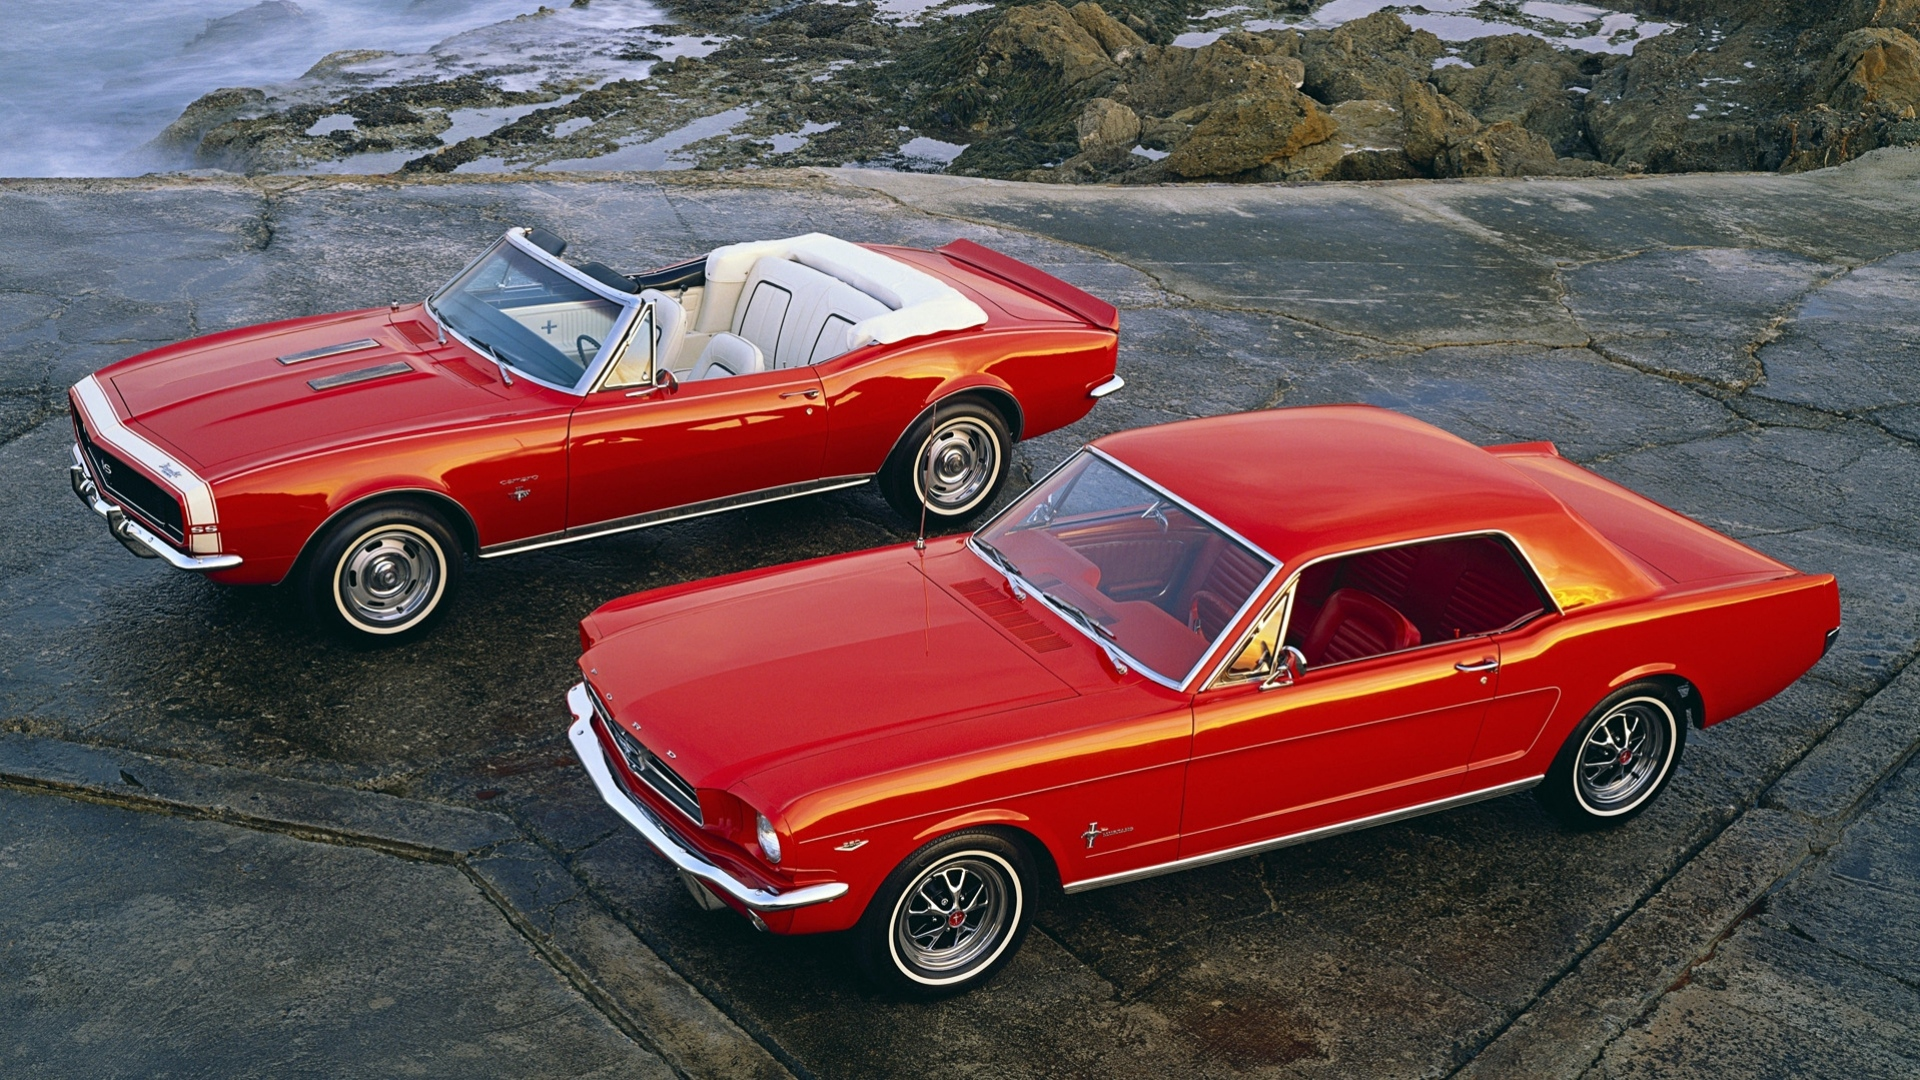 Wallpaper Muscle Cars 1964 Ford Mustang Hardtop Ford Mustang Hardtop Coupe 1920x1080 Wallpaper Teahub Io